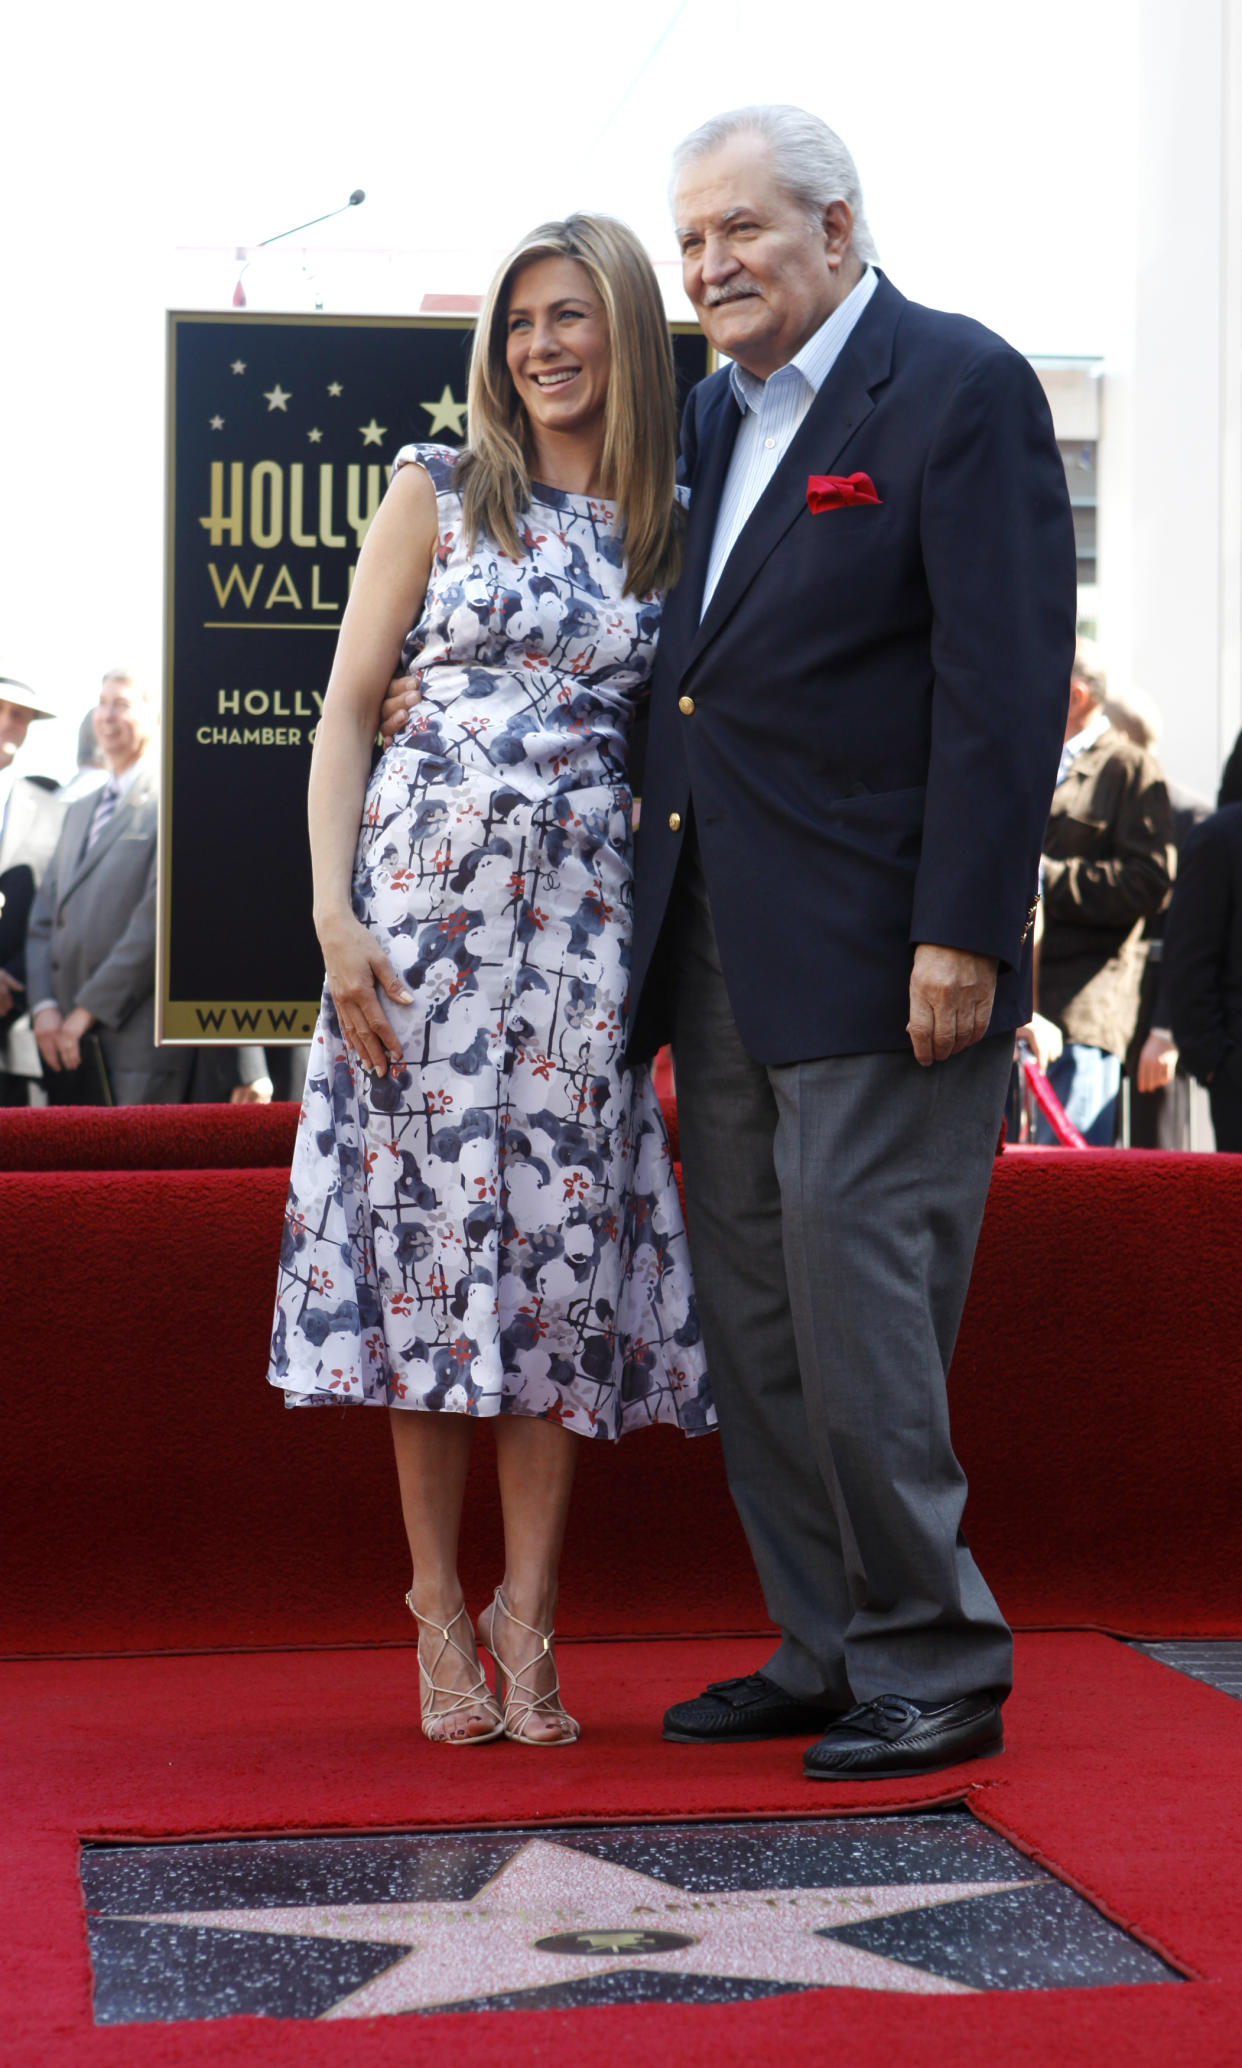 The Anistons are her Walk of Fame unveiling in 2012. (Photo: REUTERS/Mario Anzuoni)